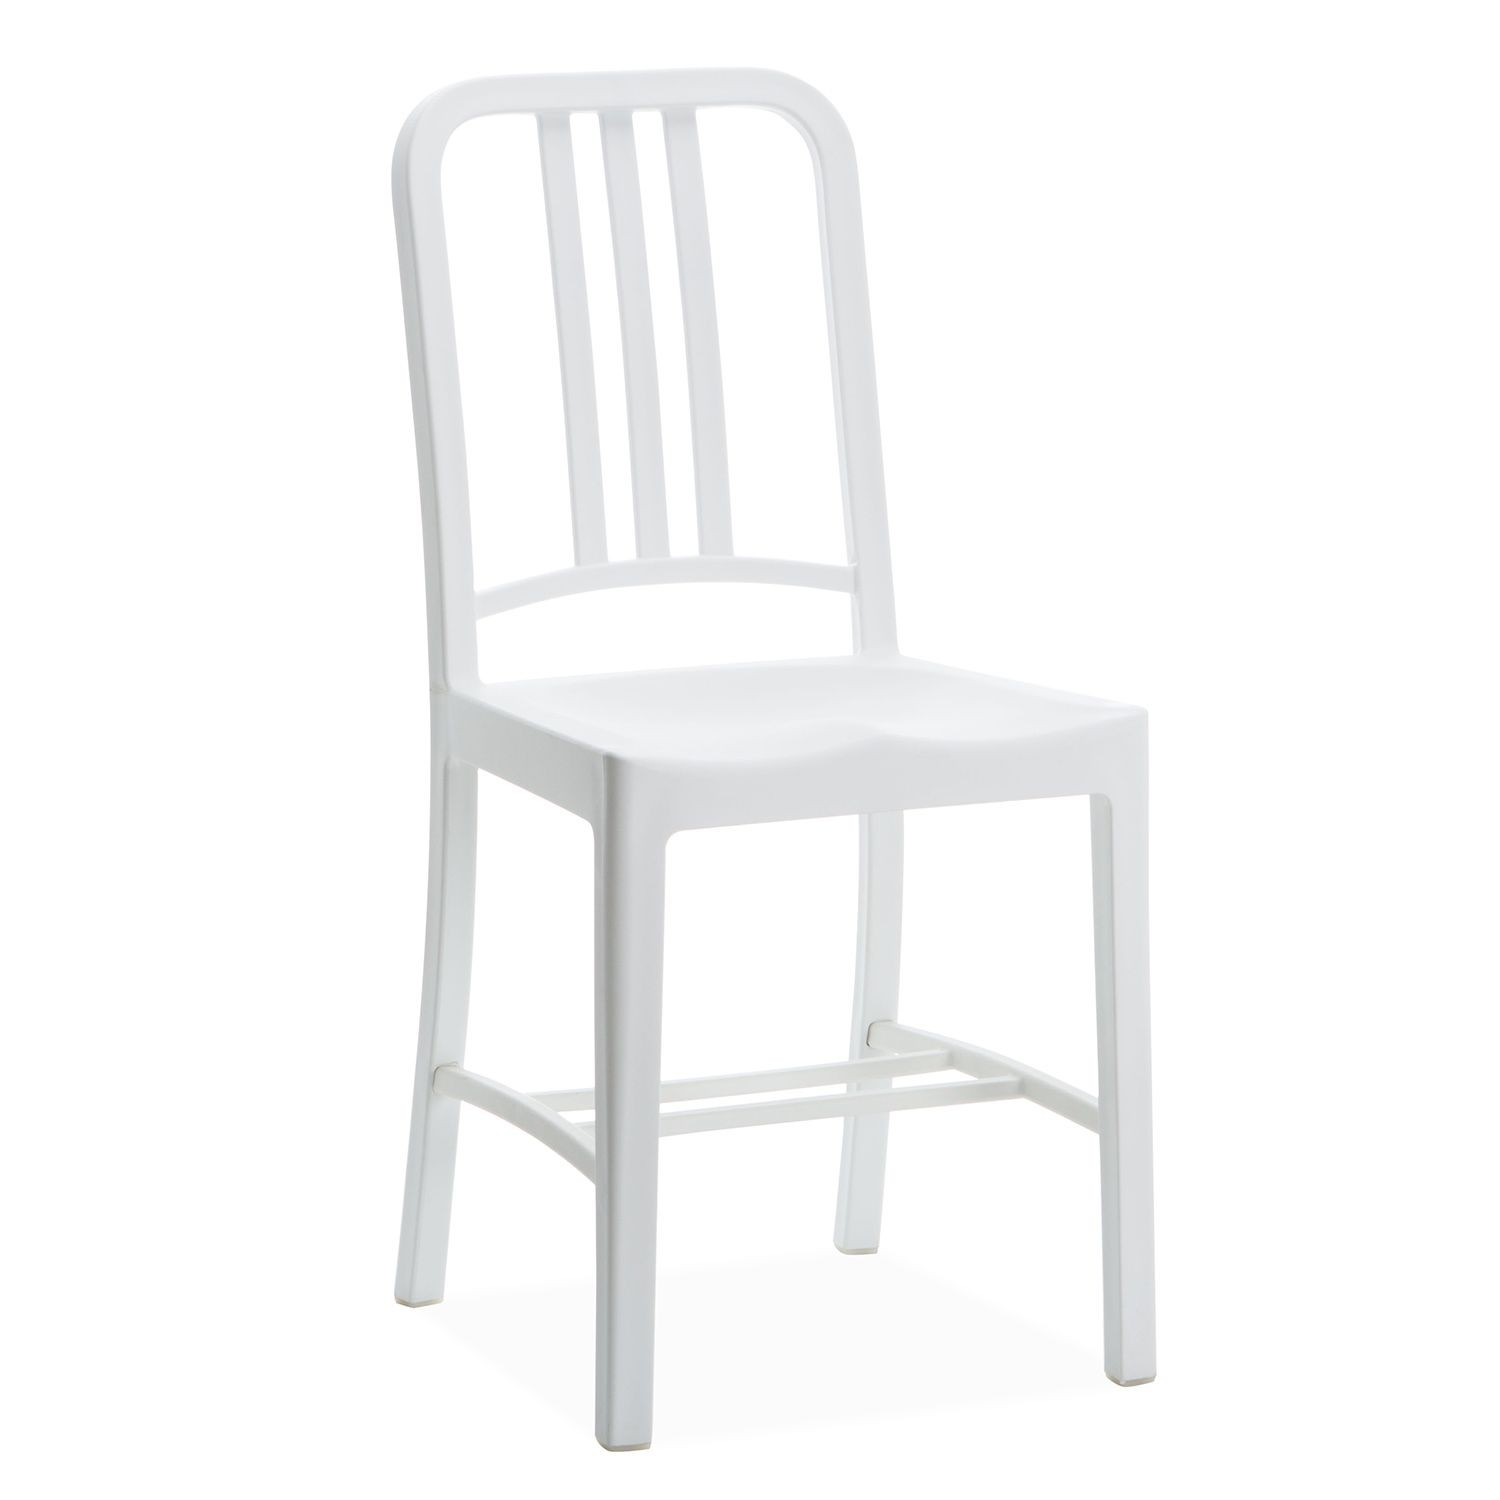 Chair NOIA, Polypropylene White *